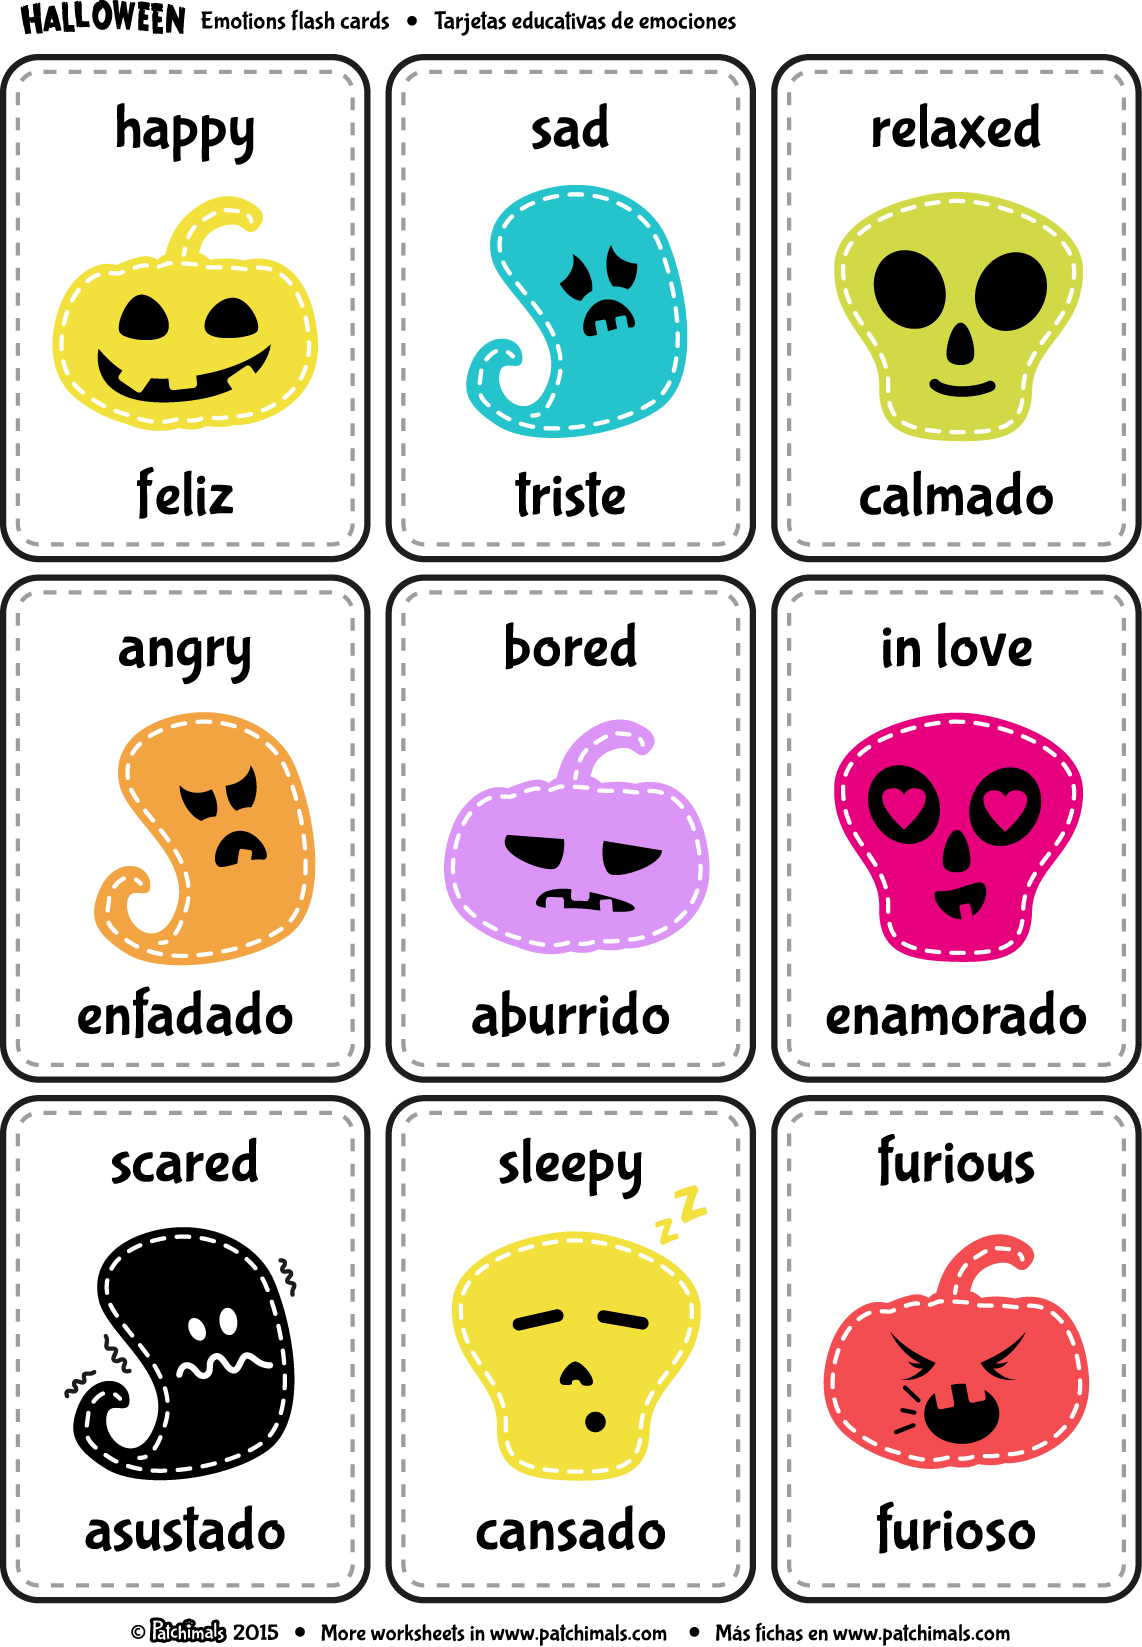 Print And Cut The Flash Cards To Learn About Emotions In